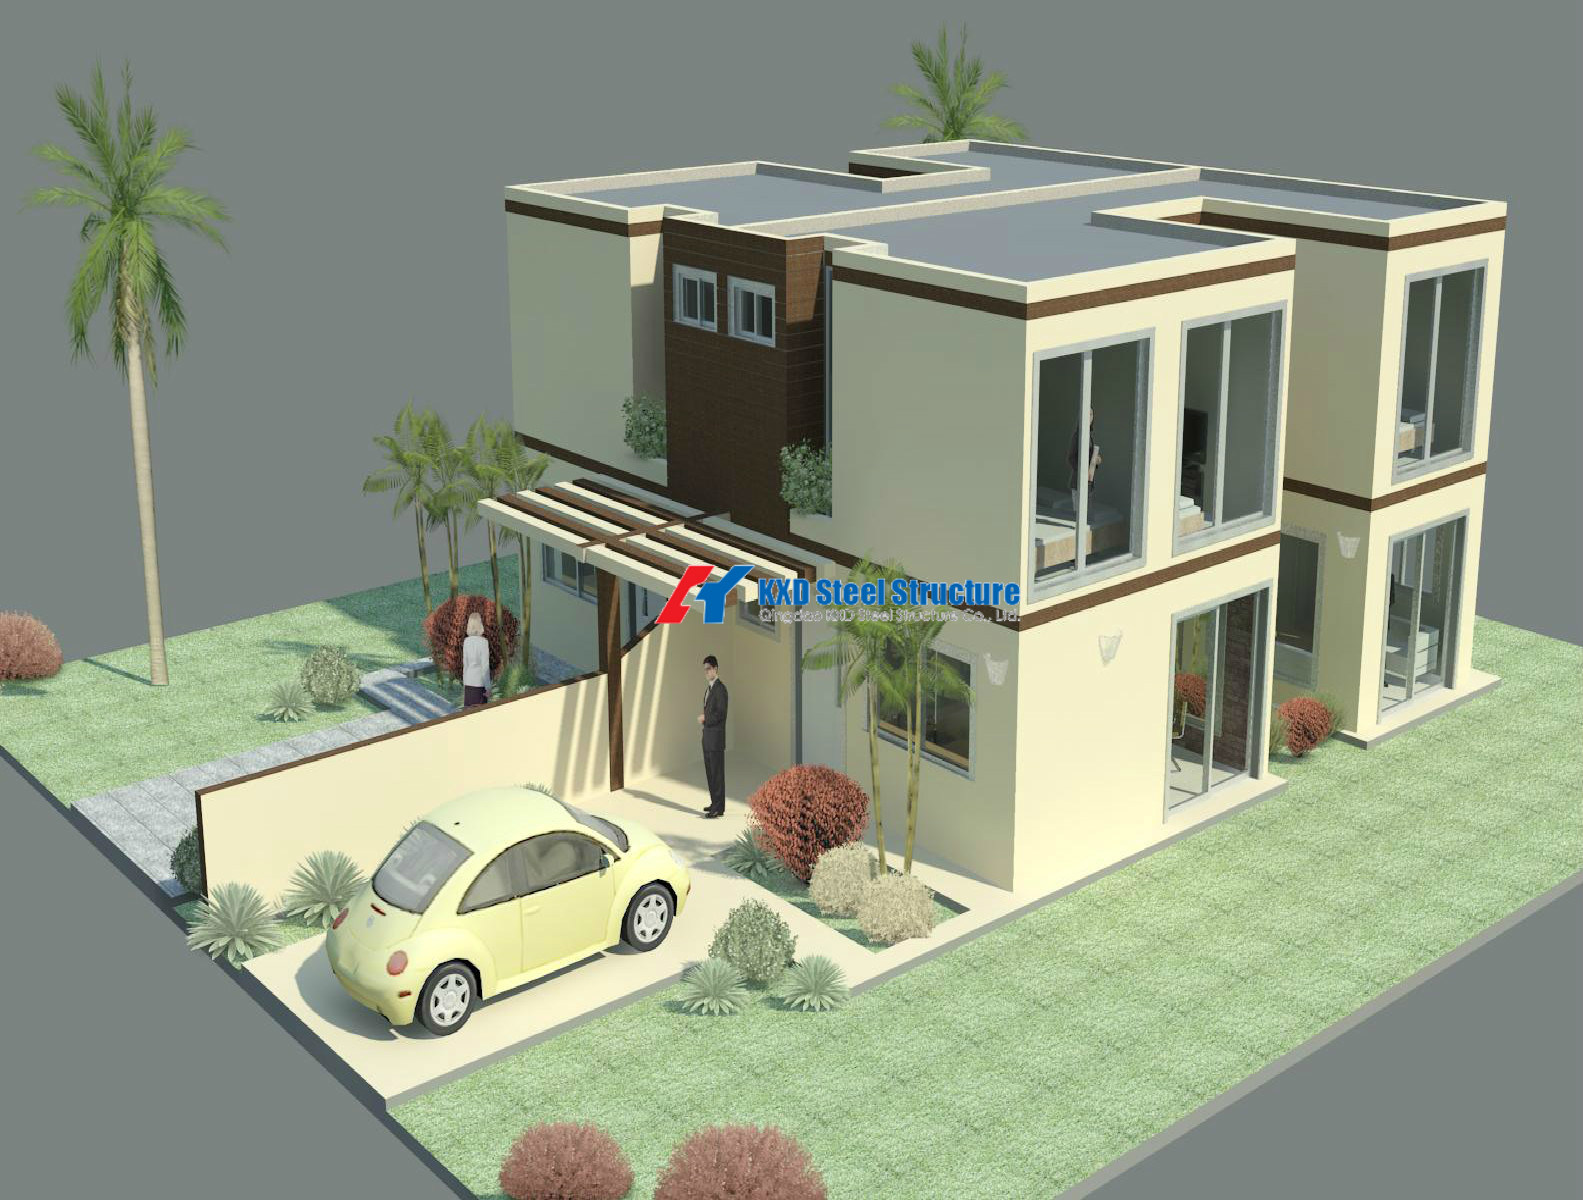 China Prefabricated Multi Storey Steel Frame Structure Residential House Building Construction